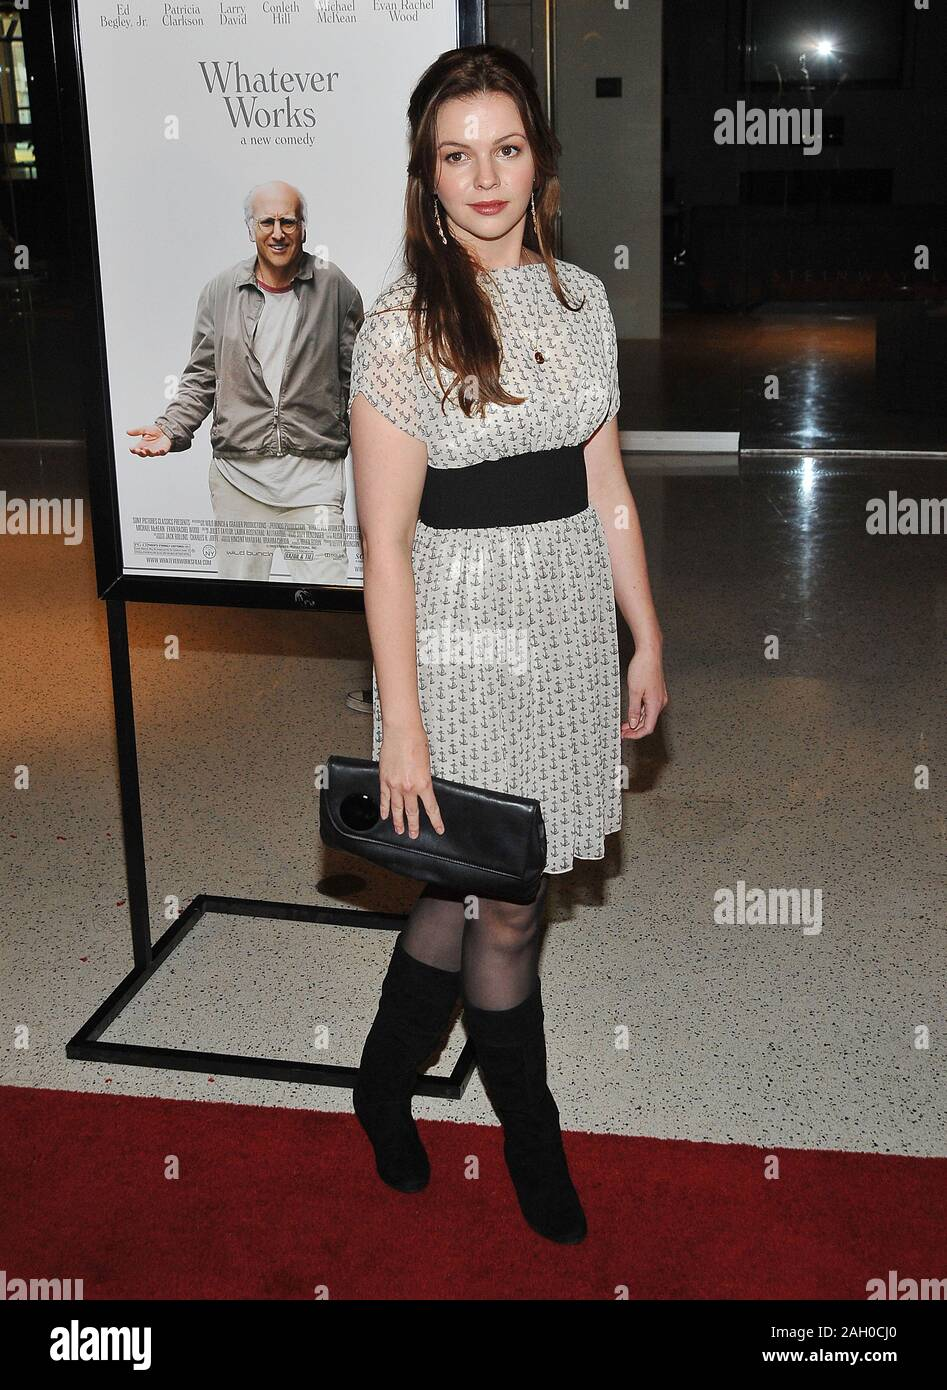 Amber Tamblin Whatever Works Premiere At The Pacific Design Center Theatre In Los Angeles Tamblinamber 38 Red Carpet Event Vertical Usa Film Indus Stock Photo Alamy